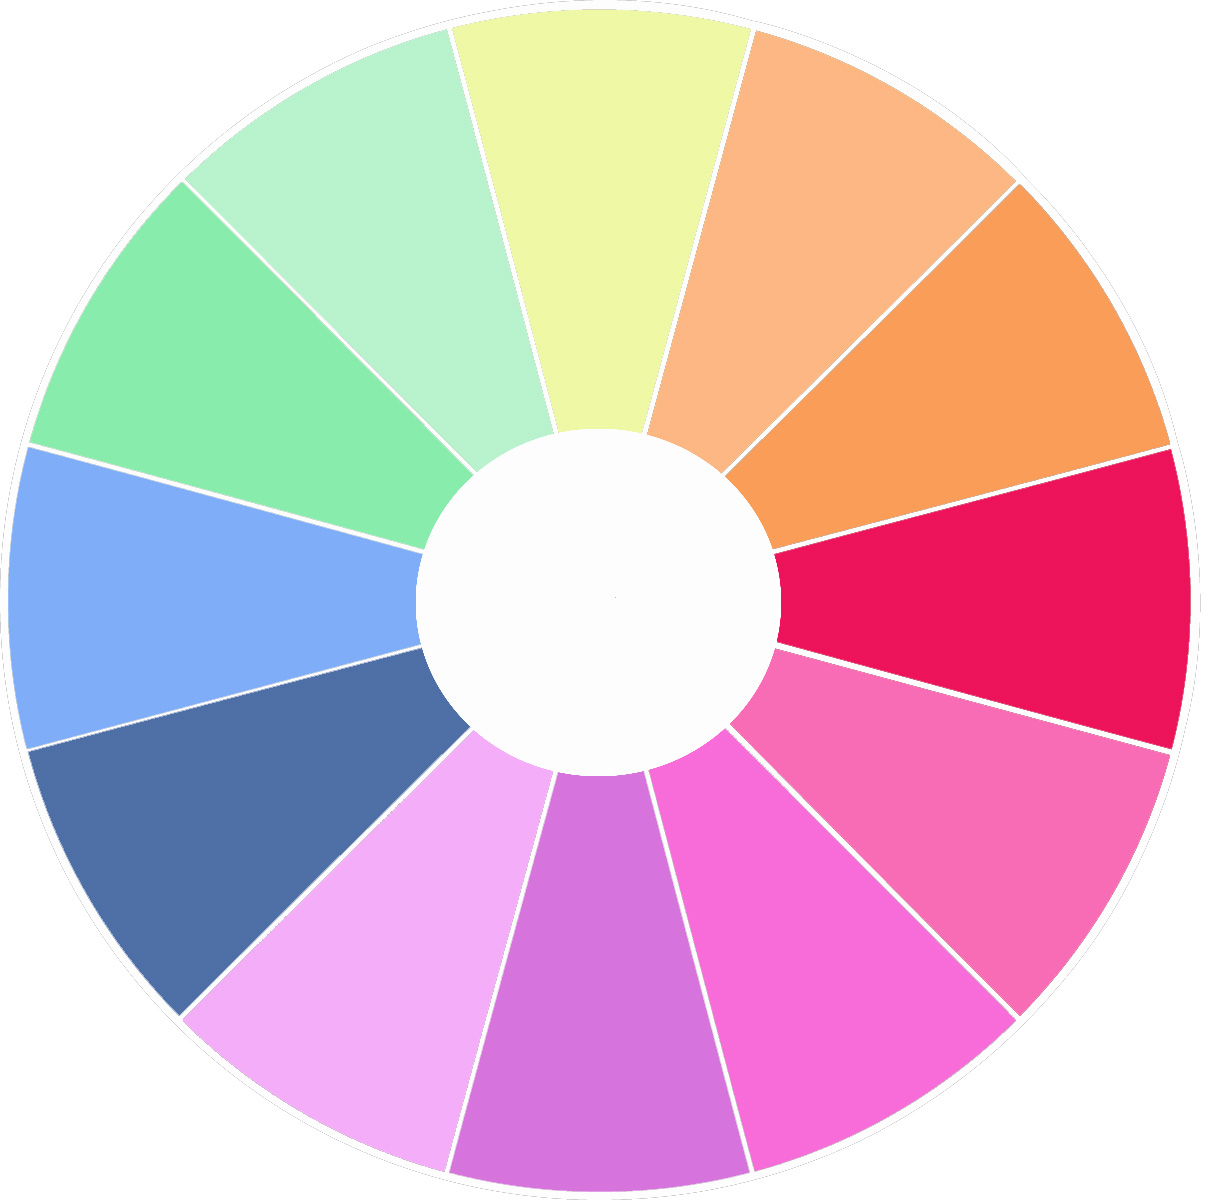 Yesterday 39 s black a blog about living life How does the colour wheel work